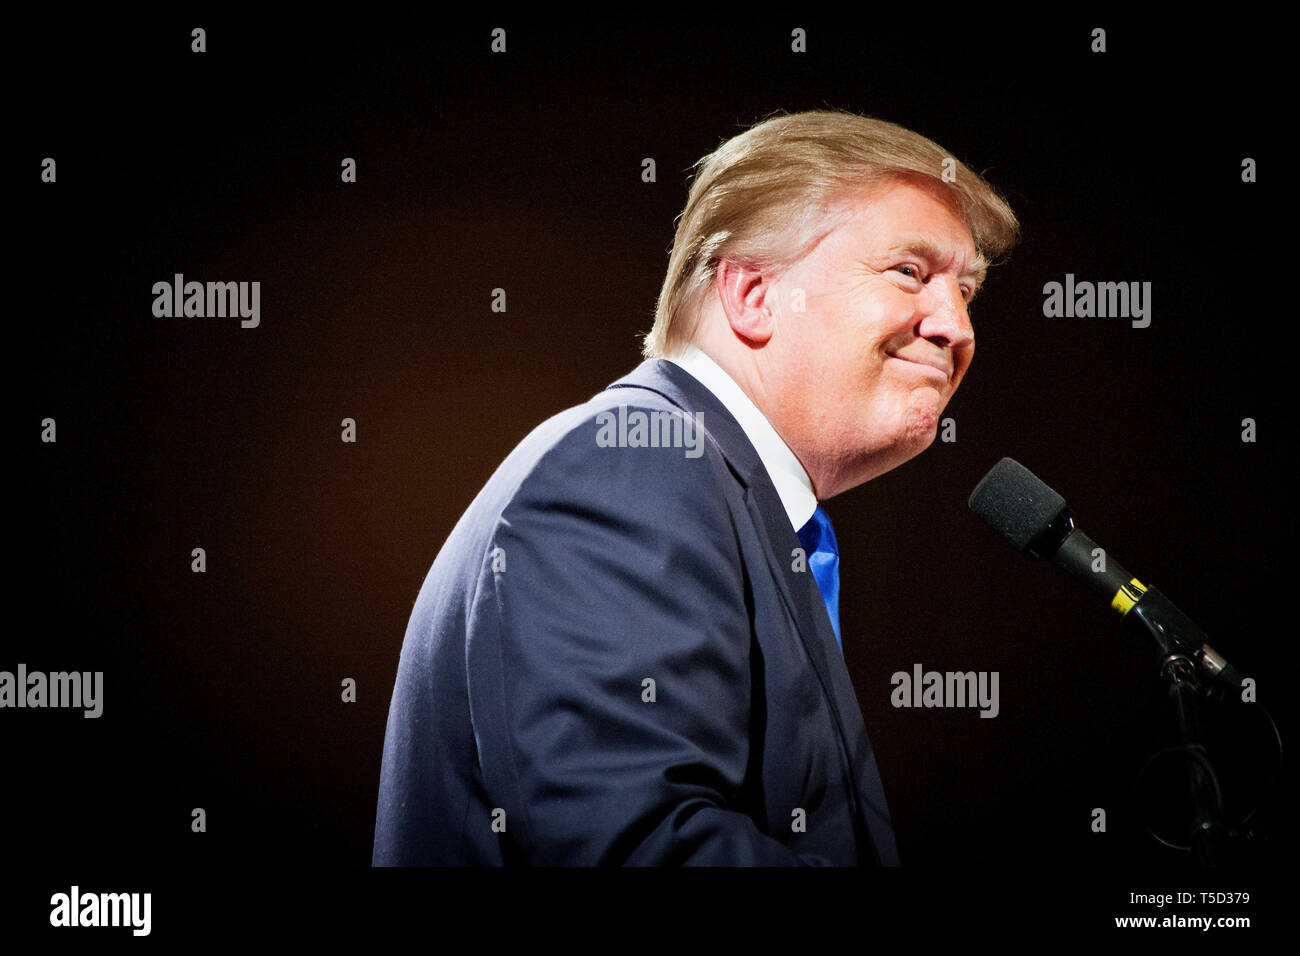 Real Estater and TV Entertainer Donald J. Trump is flirting with the idea of running for President in the 2012 Election. Wednesday he made an important visit with the Nashua Chamber of Commerce in New Hampshire. Stock Photo